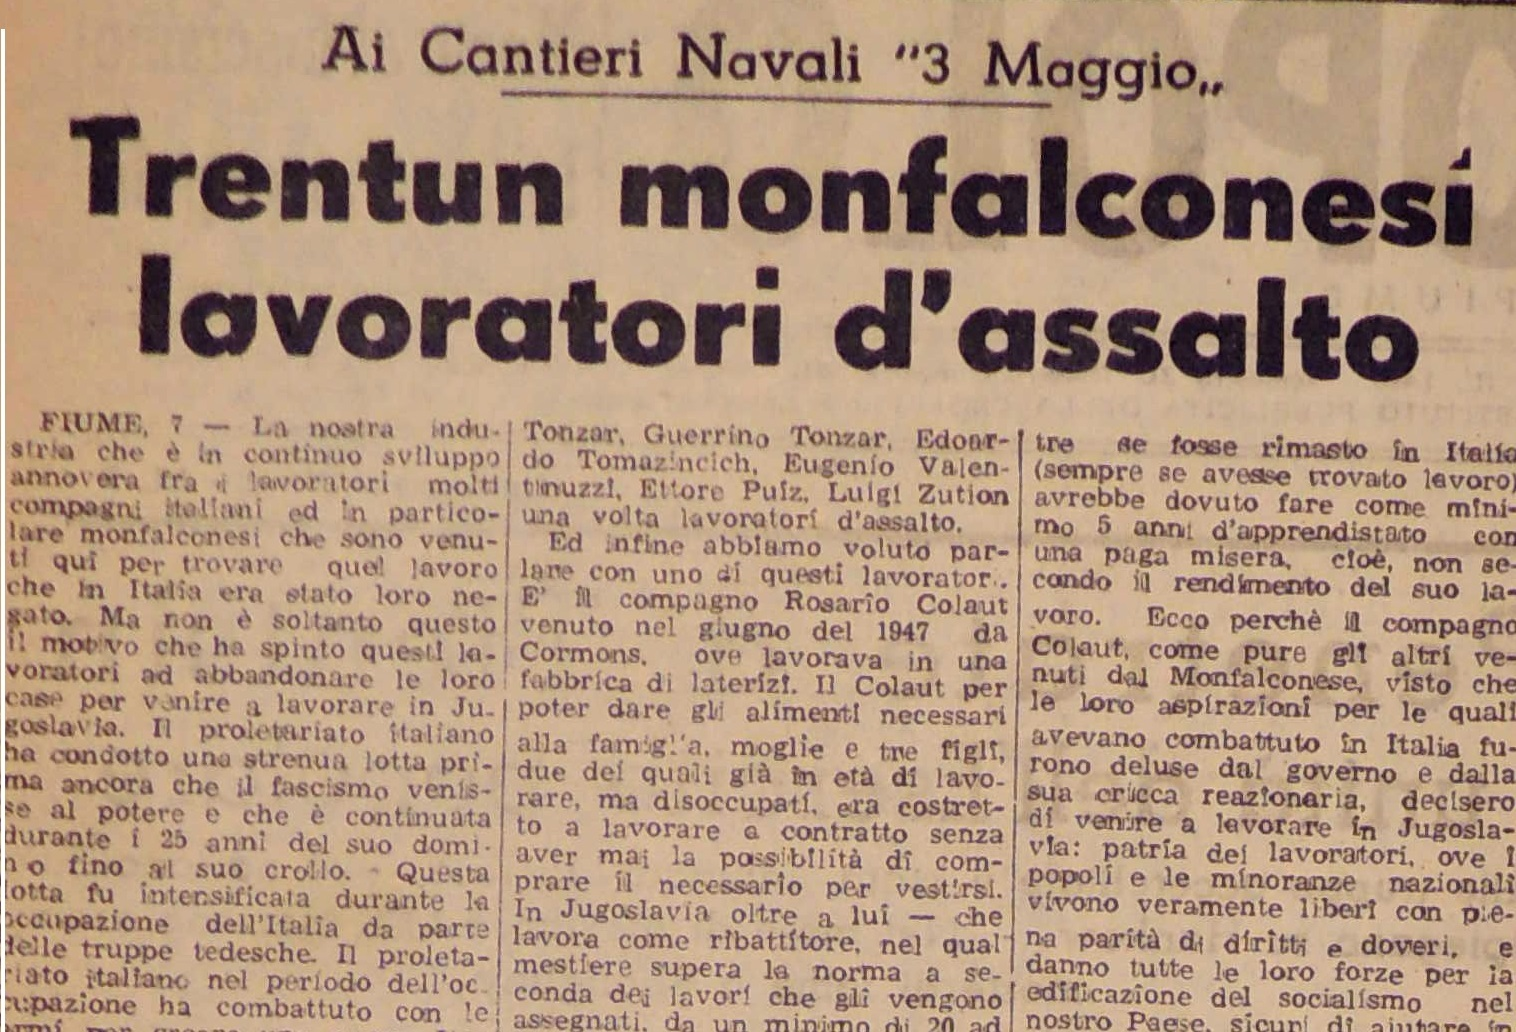 La voce del Popolo, January 1949